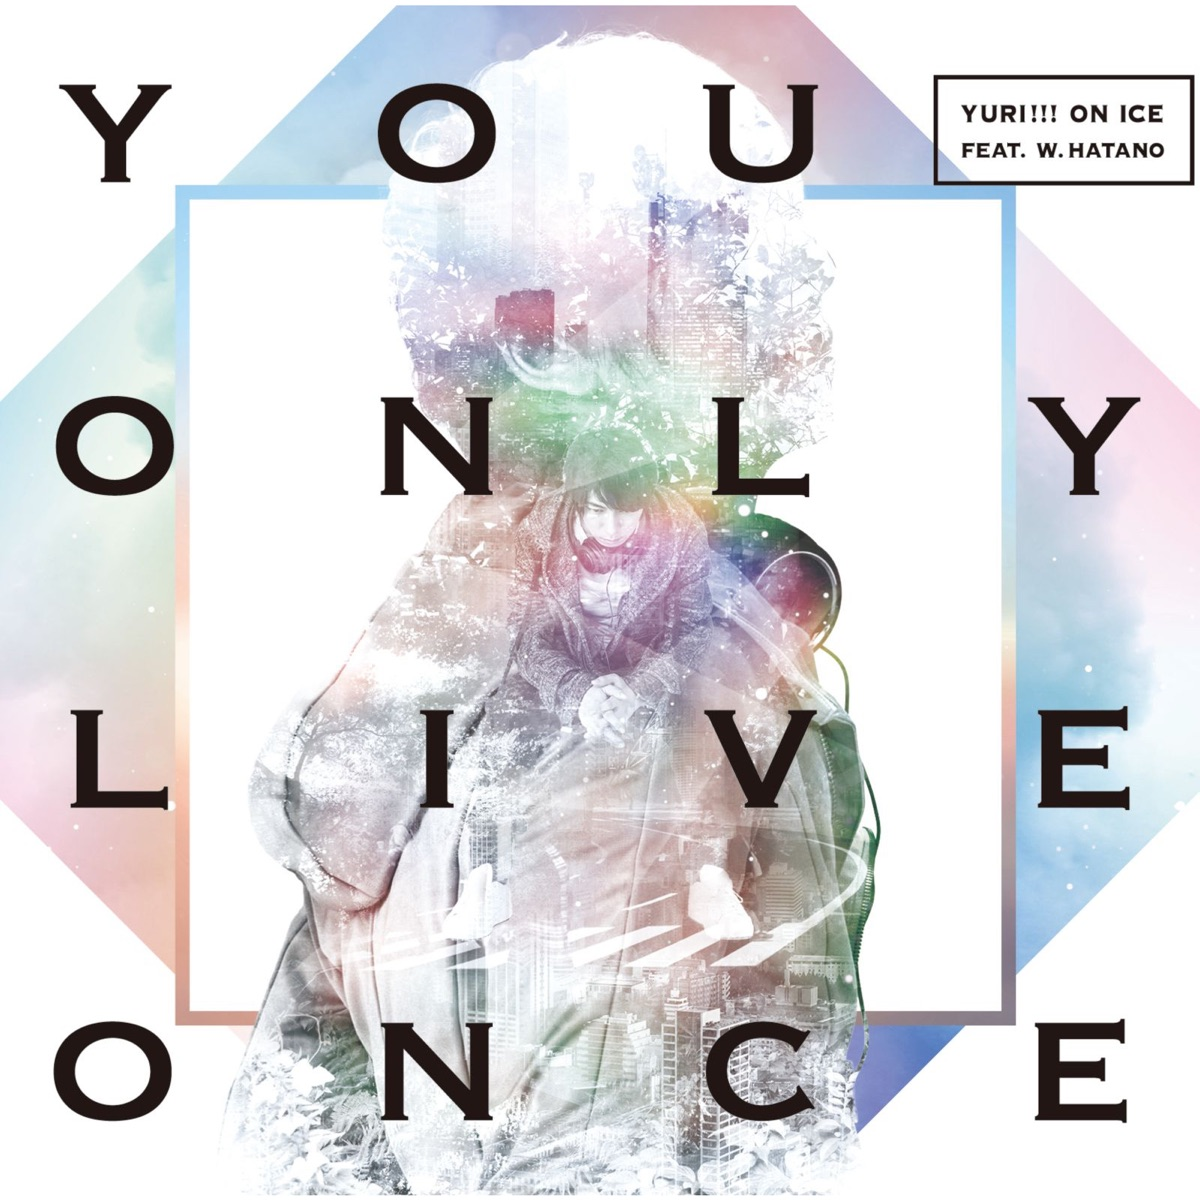 Cover for『YURI!!! on ICE feat. w.hatano - You Only Live Once』from the release『You Only Live Once』